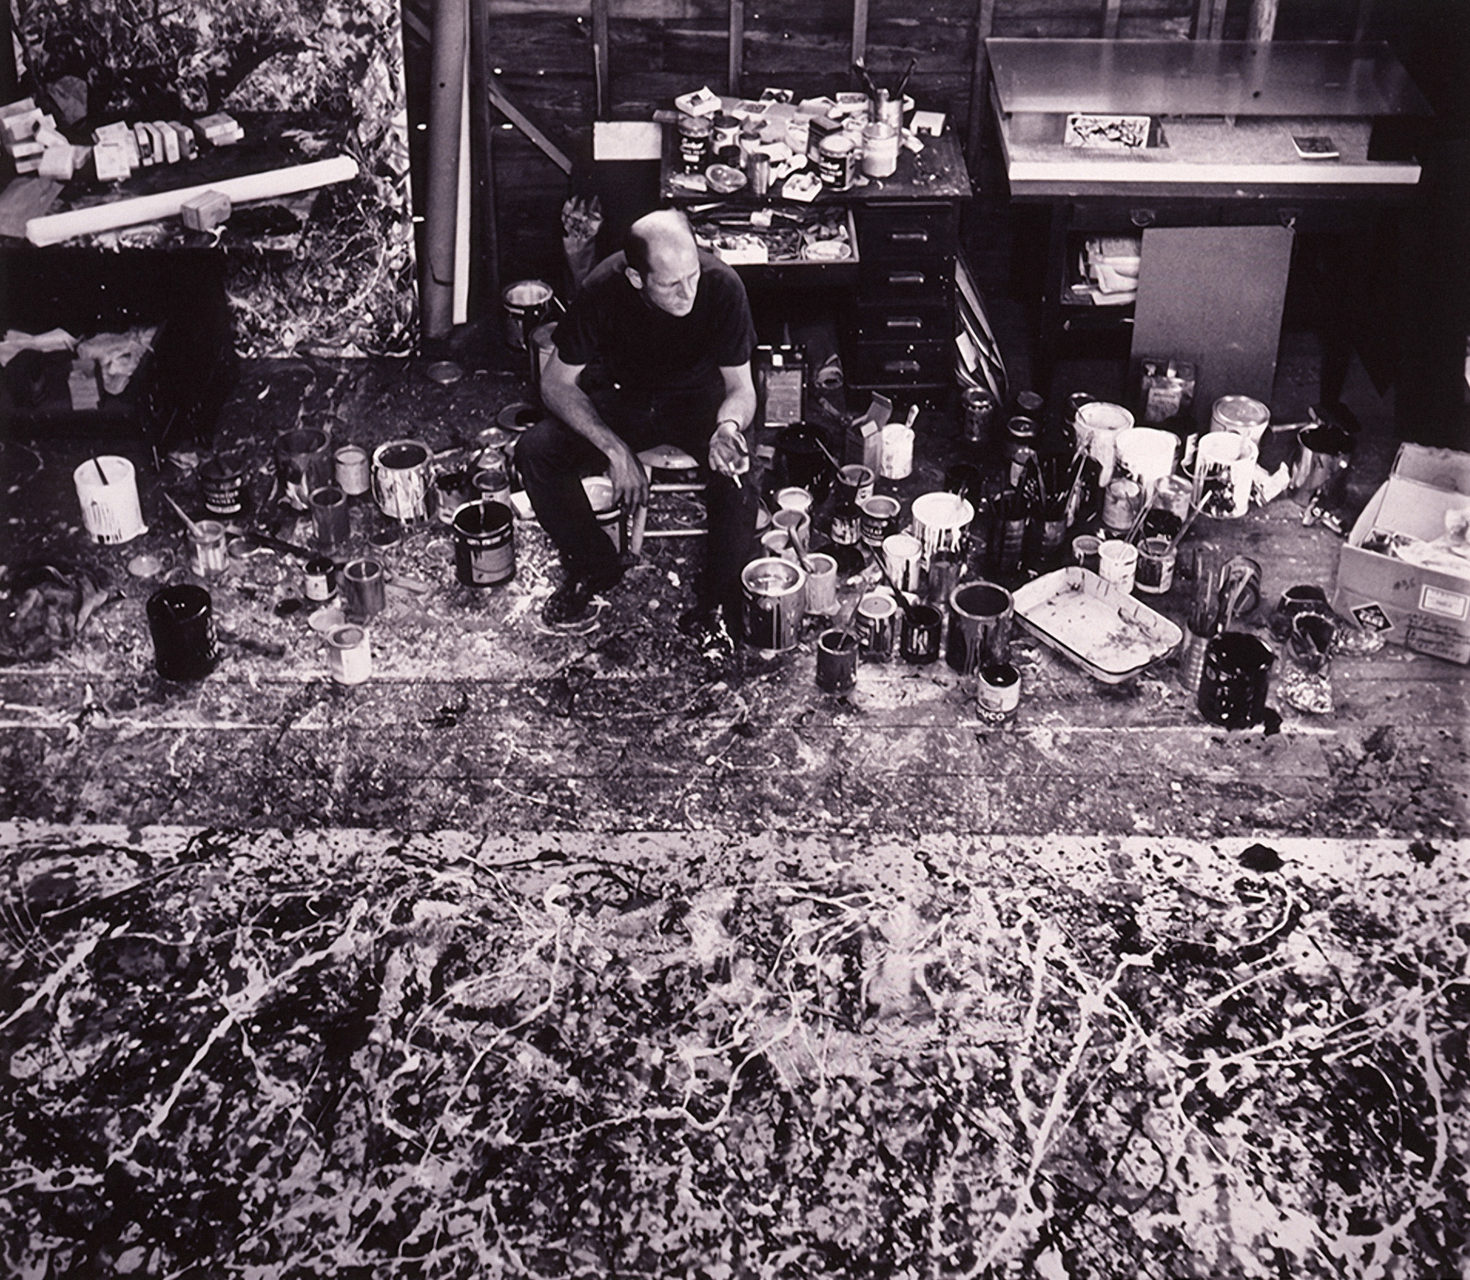 Jackson Pollock is seated in his studio in 1950, surrounded by paint tins. There is a large painting on the floor. Photograph by Hans Namuth